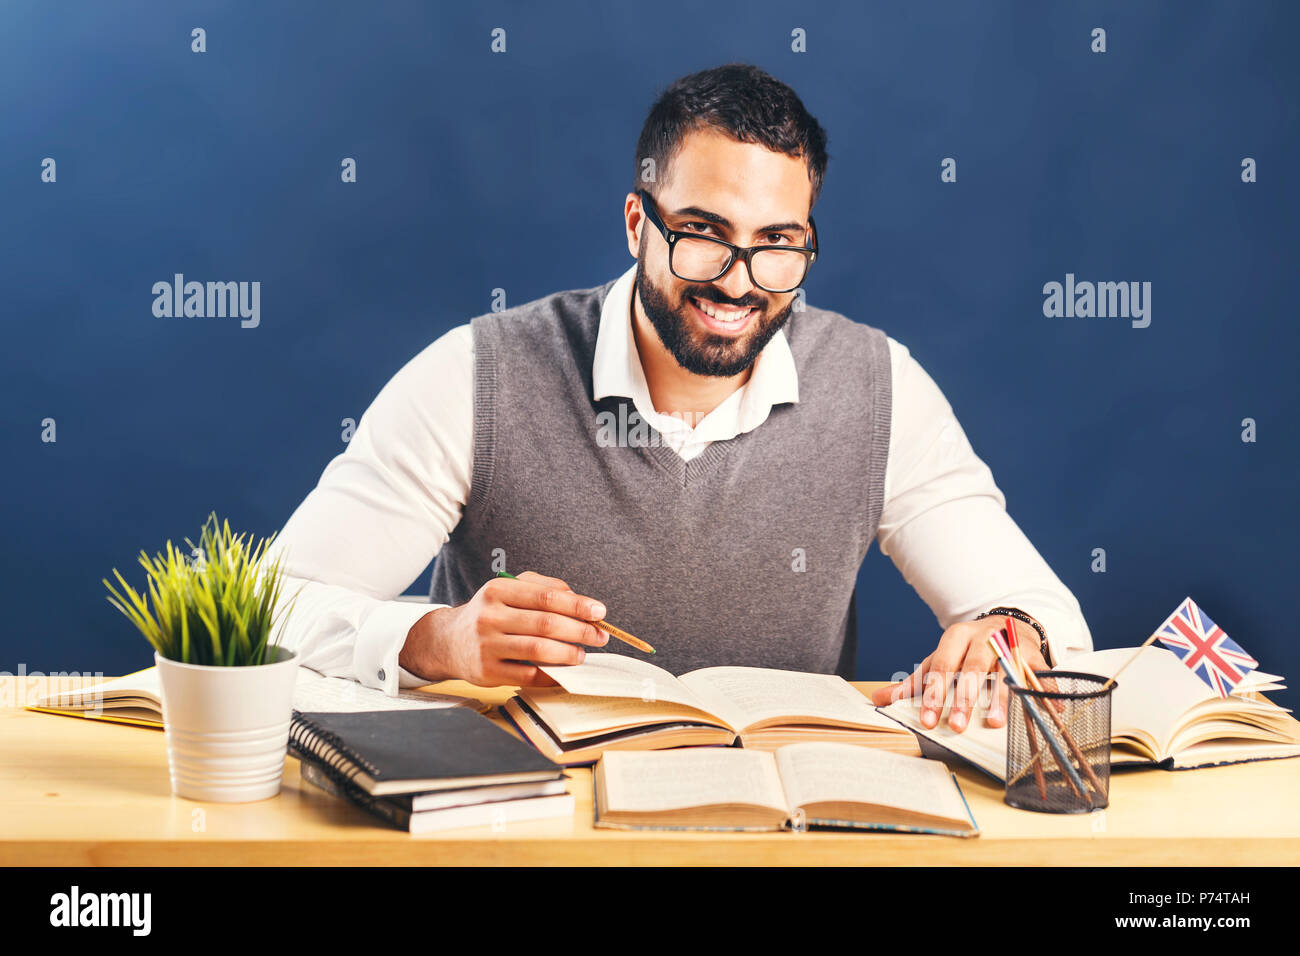 Eastern bearded man working hard learning english, wearing gray sweater vest and pristine white shirt, office desk before black wall - Stock Image